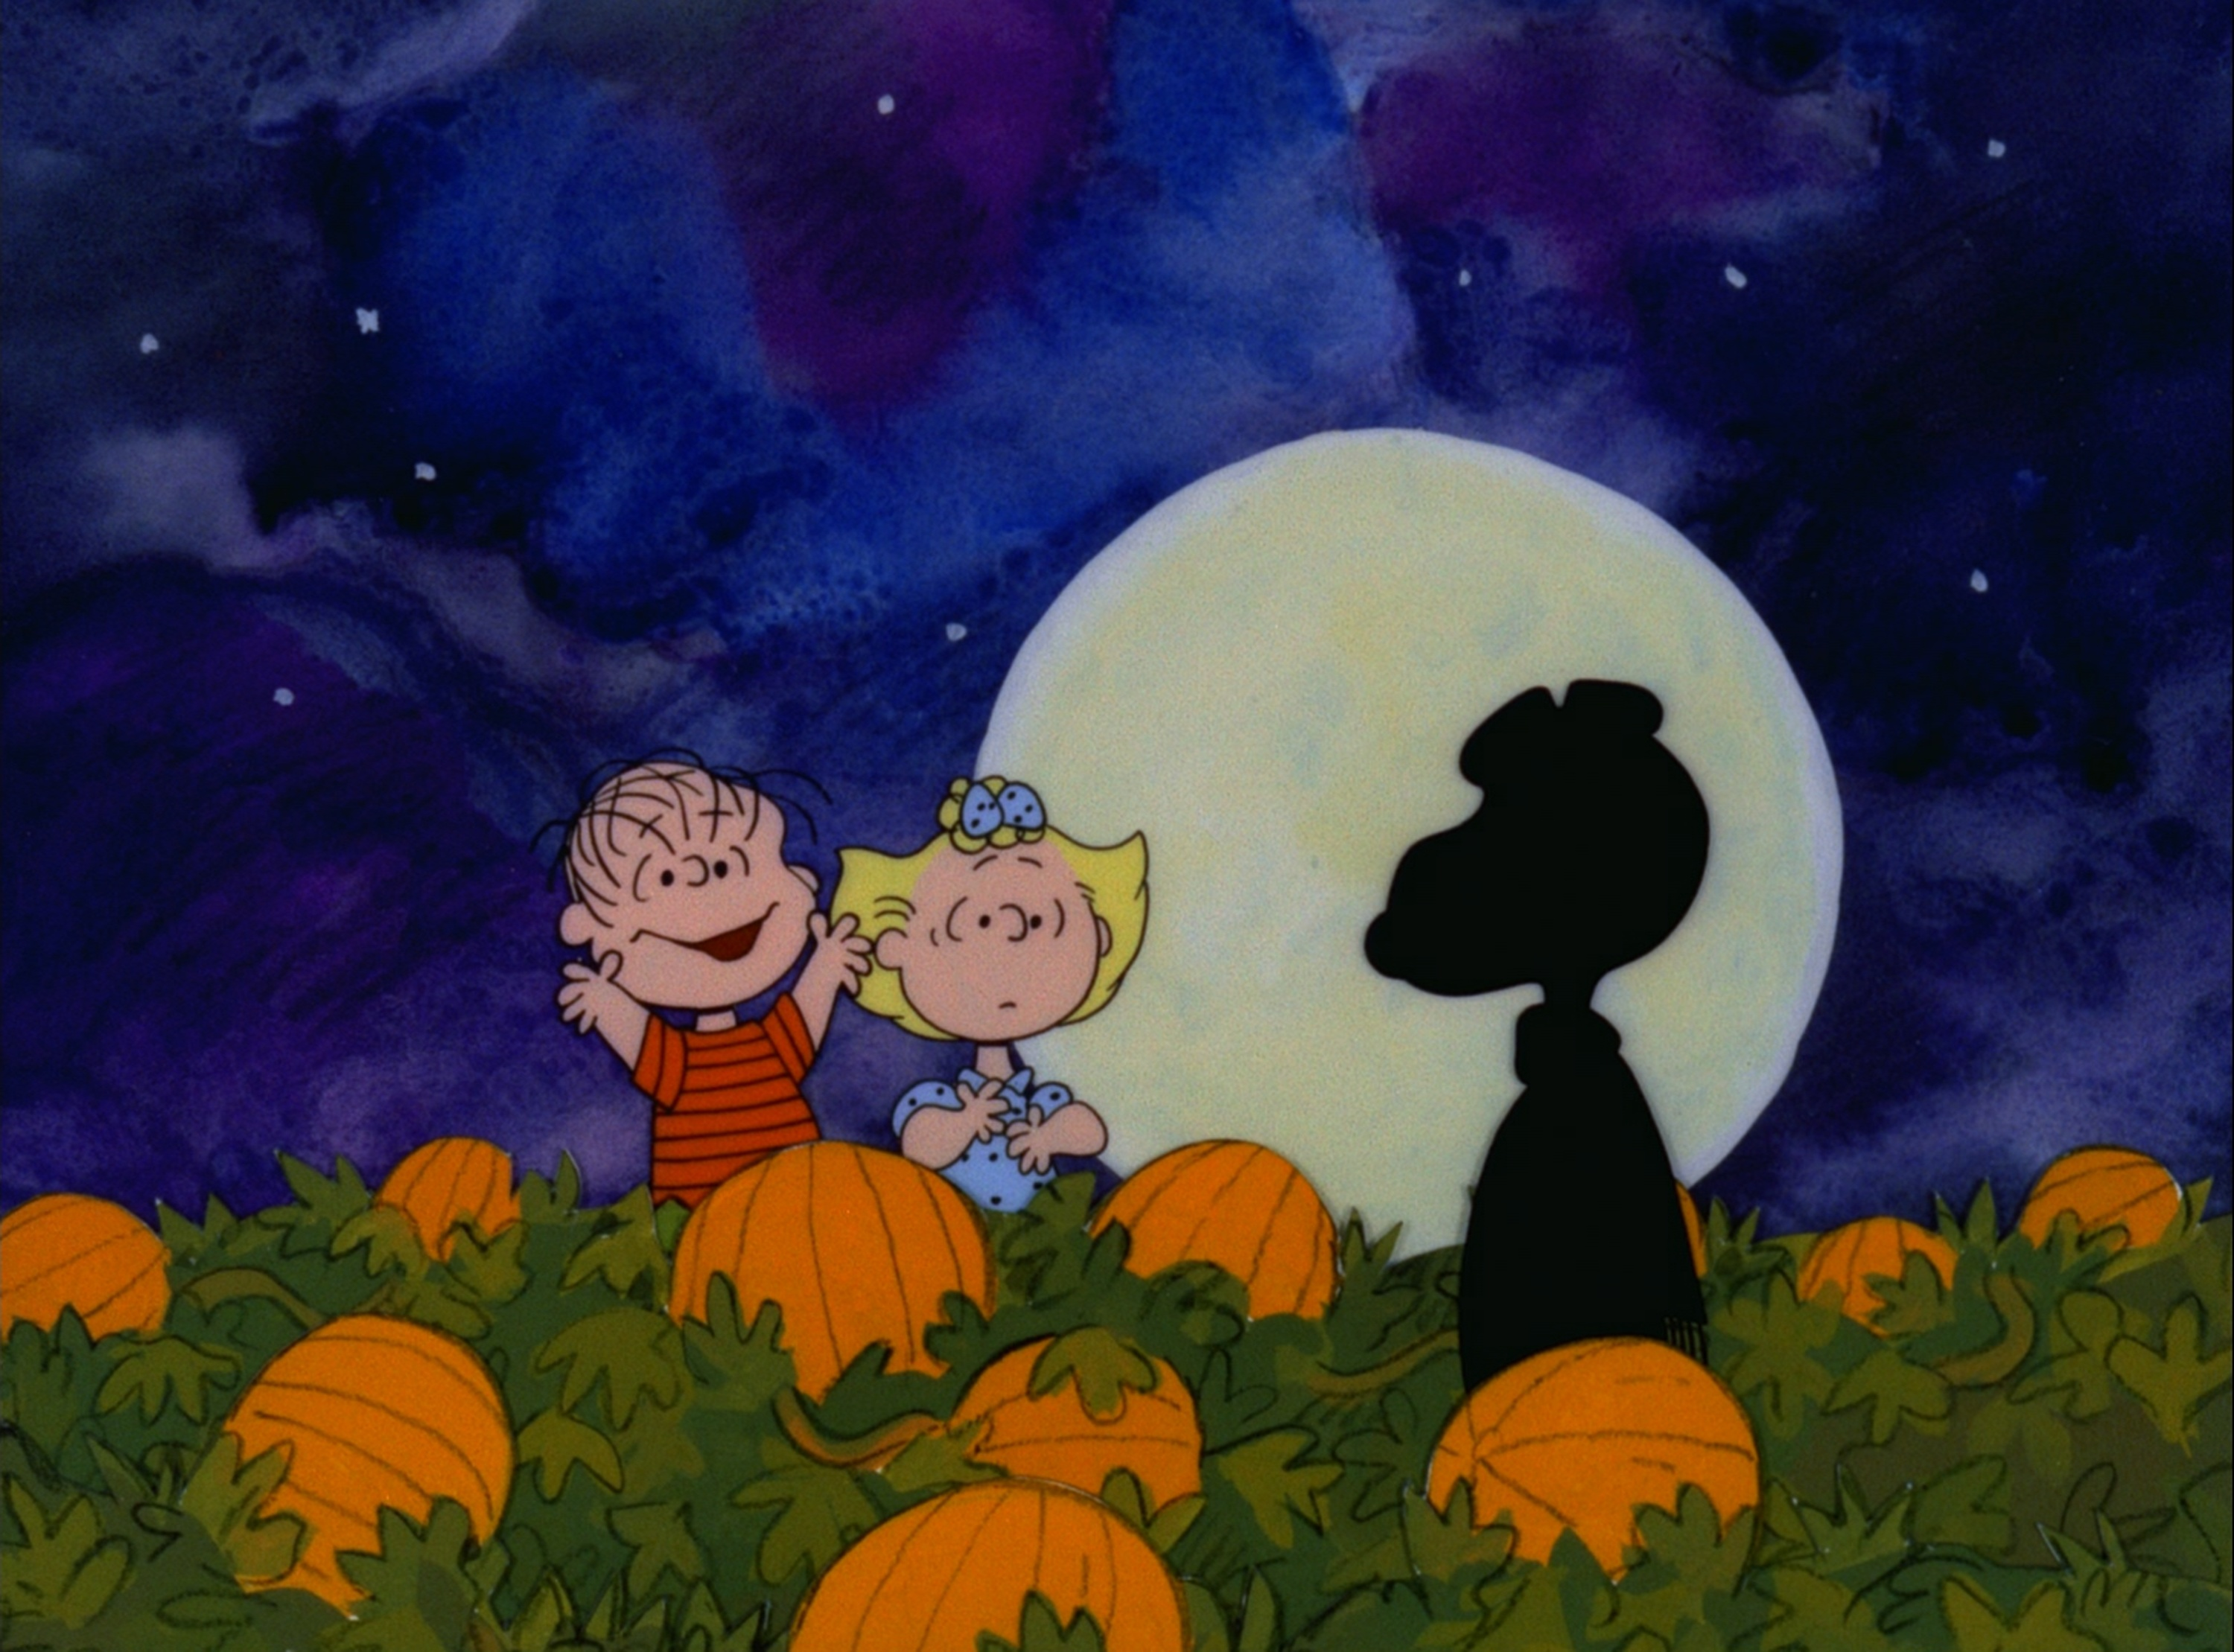 october is spooktacular with abc halloween movies and specials | abc